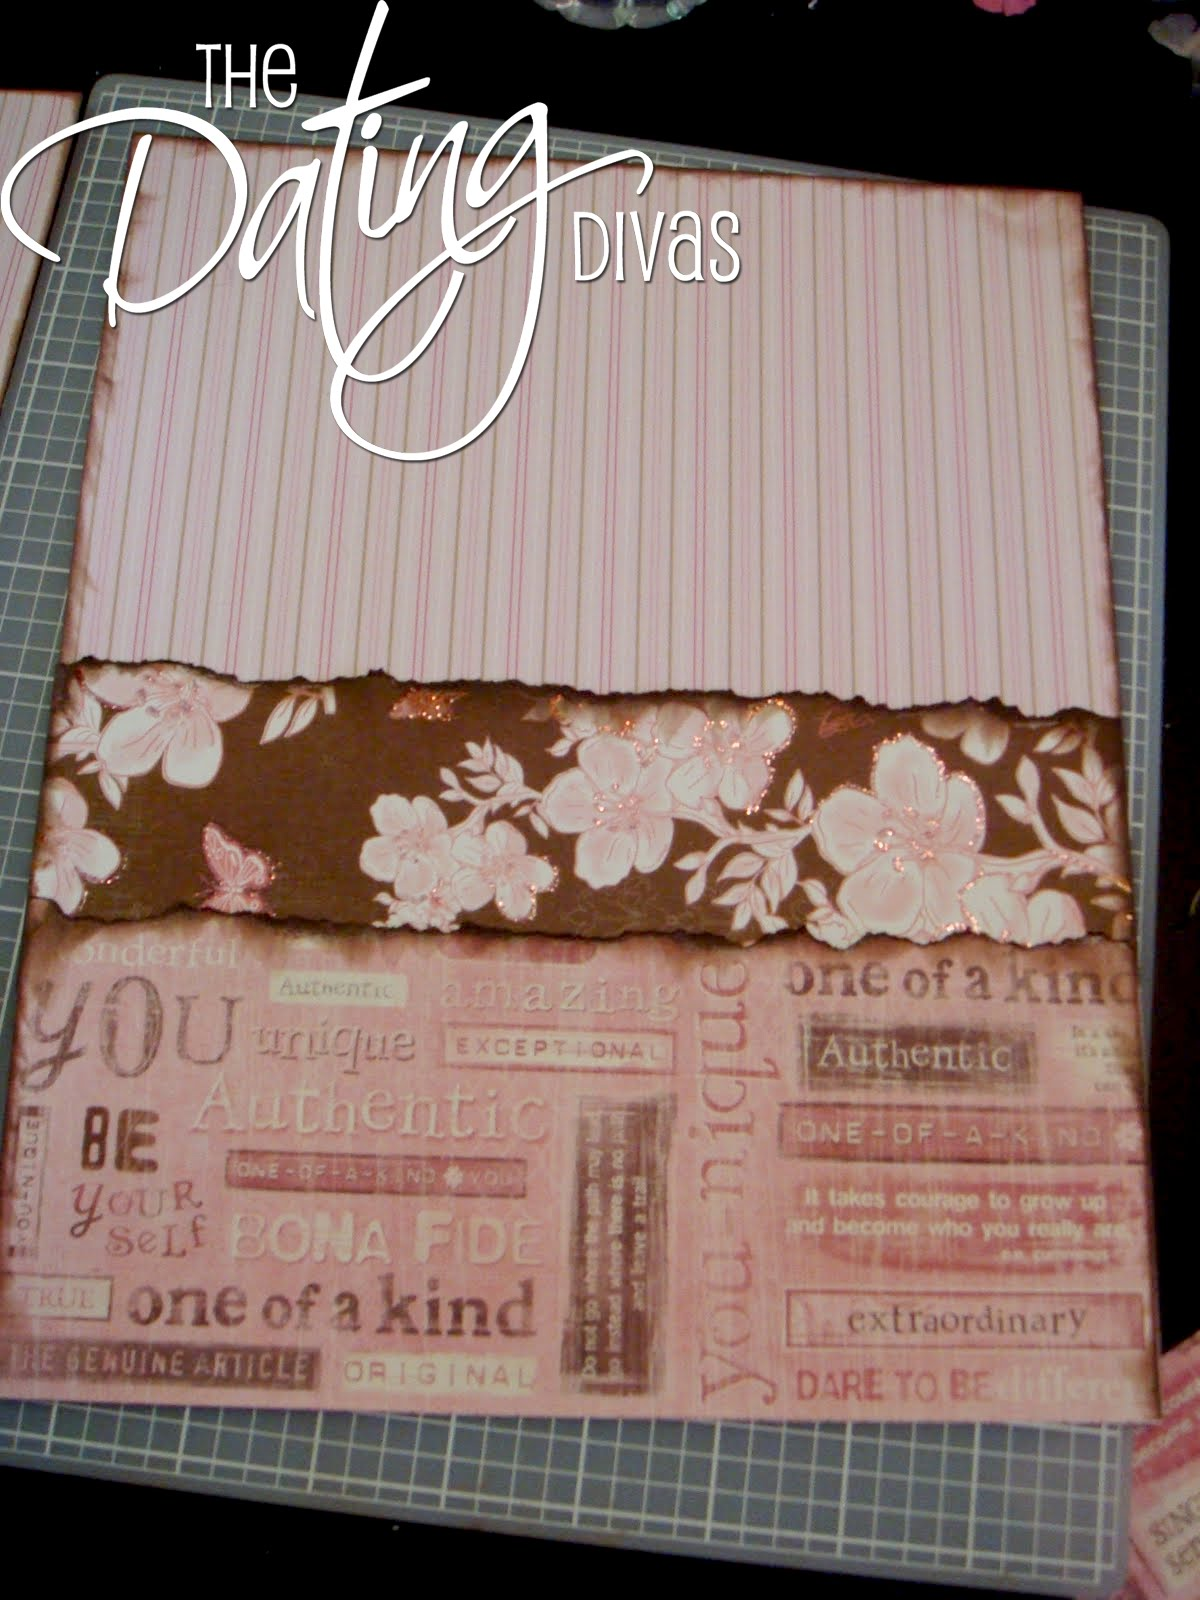 How to put scrapbook back together - You Can Then Slip The Back Cover And The Spine Into The Binder They Are Done I Then Found A Ball Of Twine I Had In My Scrapbooking Closet And Wrapped